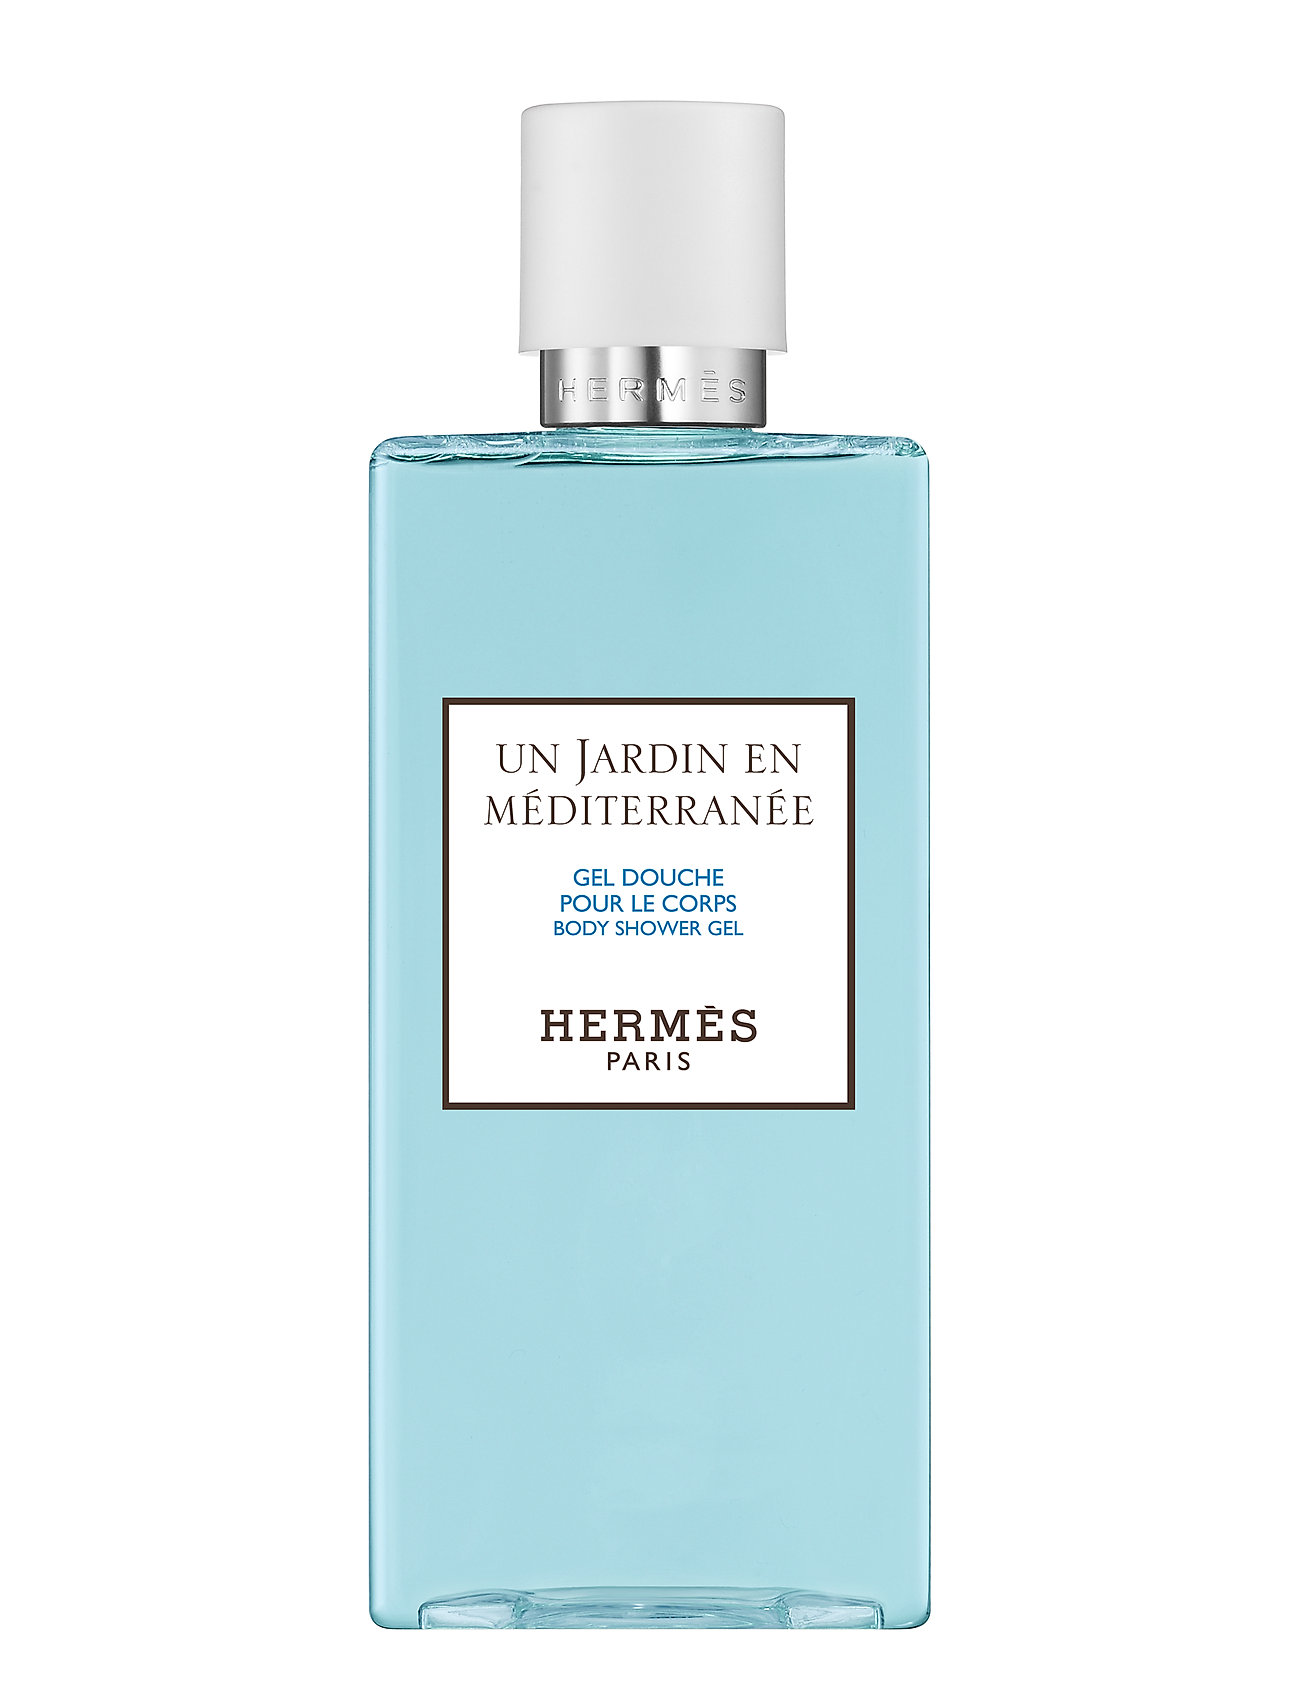 Image of Un Jardin En MéDiterranéE, Body Shower Gel Beauty WOMEN Skin Care Body Shower Gel Nude HERMÈS (3189527851)